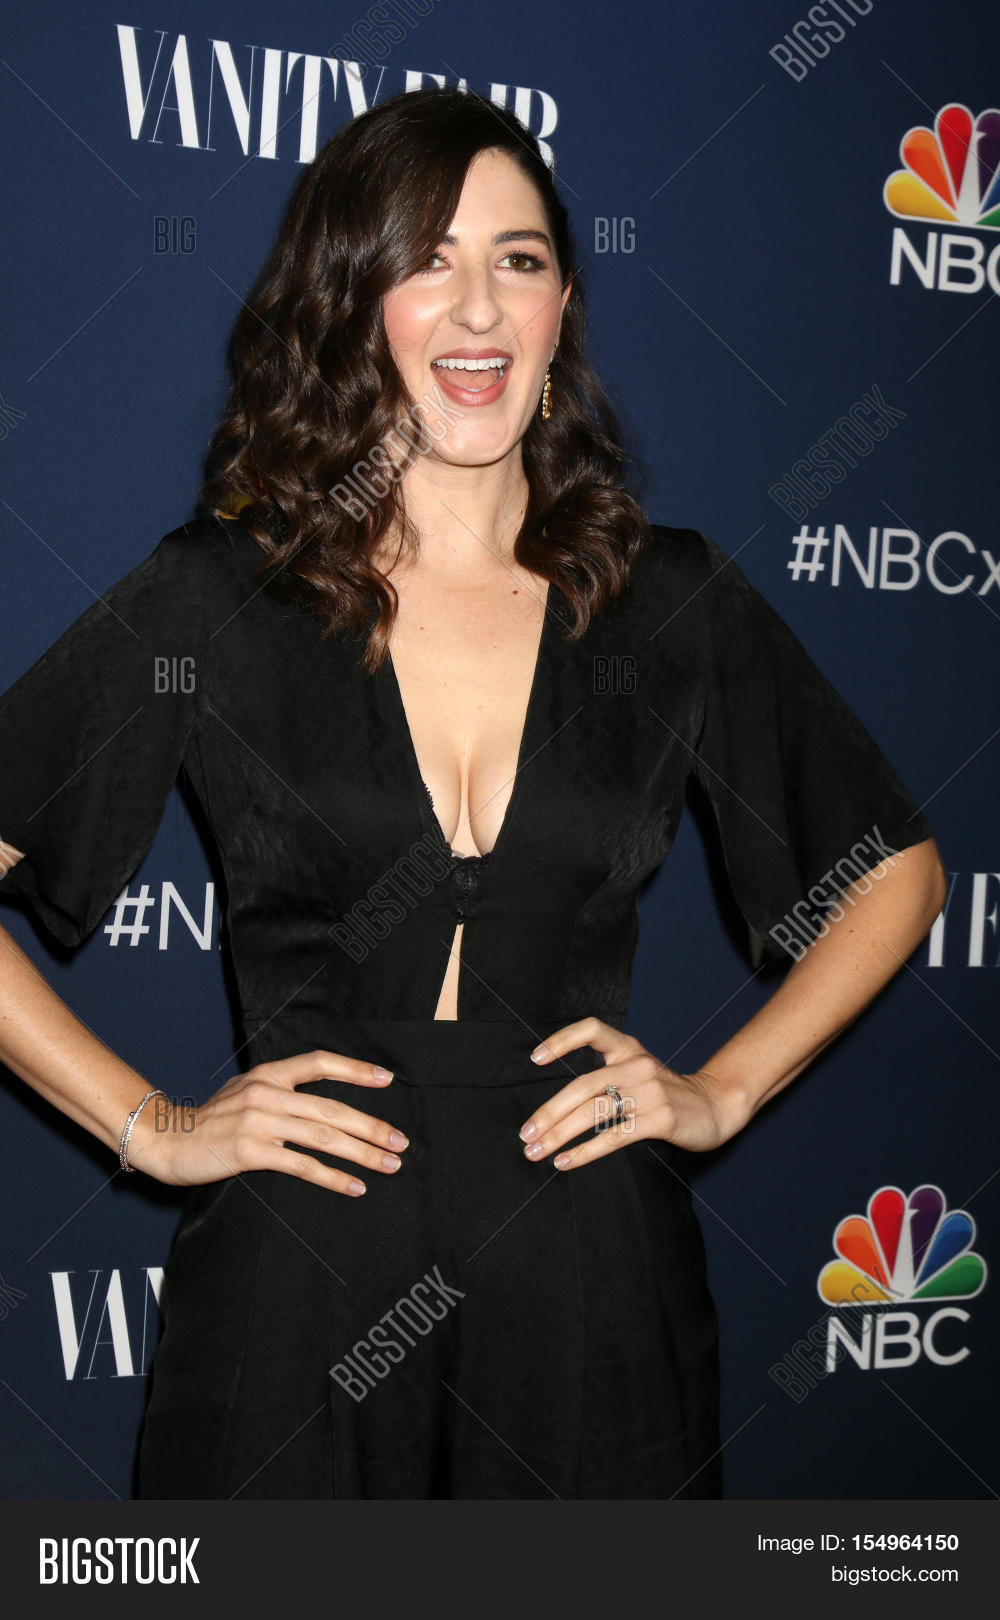 Stock Photo Los Angeles Nov 2%3A D Arcy Carden At The Nbc And Vanity Fair Toast The 2016 2017 Tv Season At Neuehouse Hollywood On November 2%2C 2016 In Los Angeles%2C Ca on Big Images Of Small House In Los Angeles